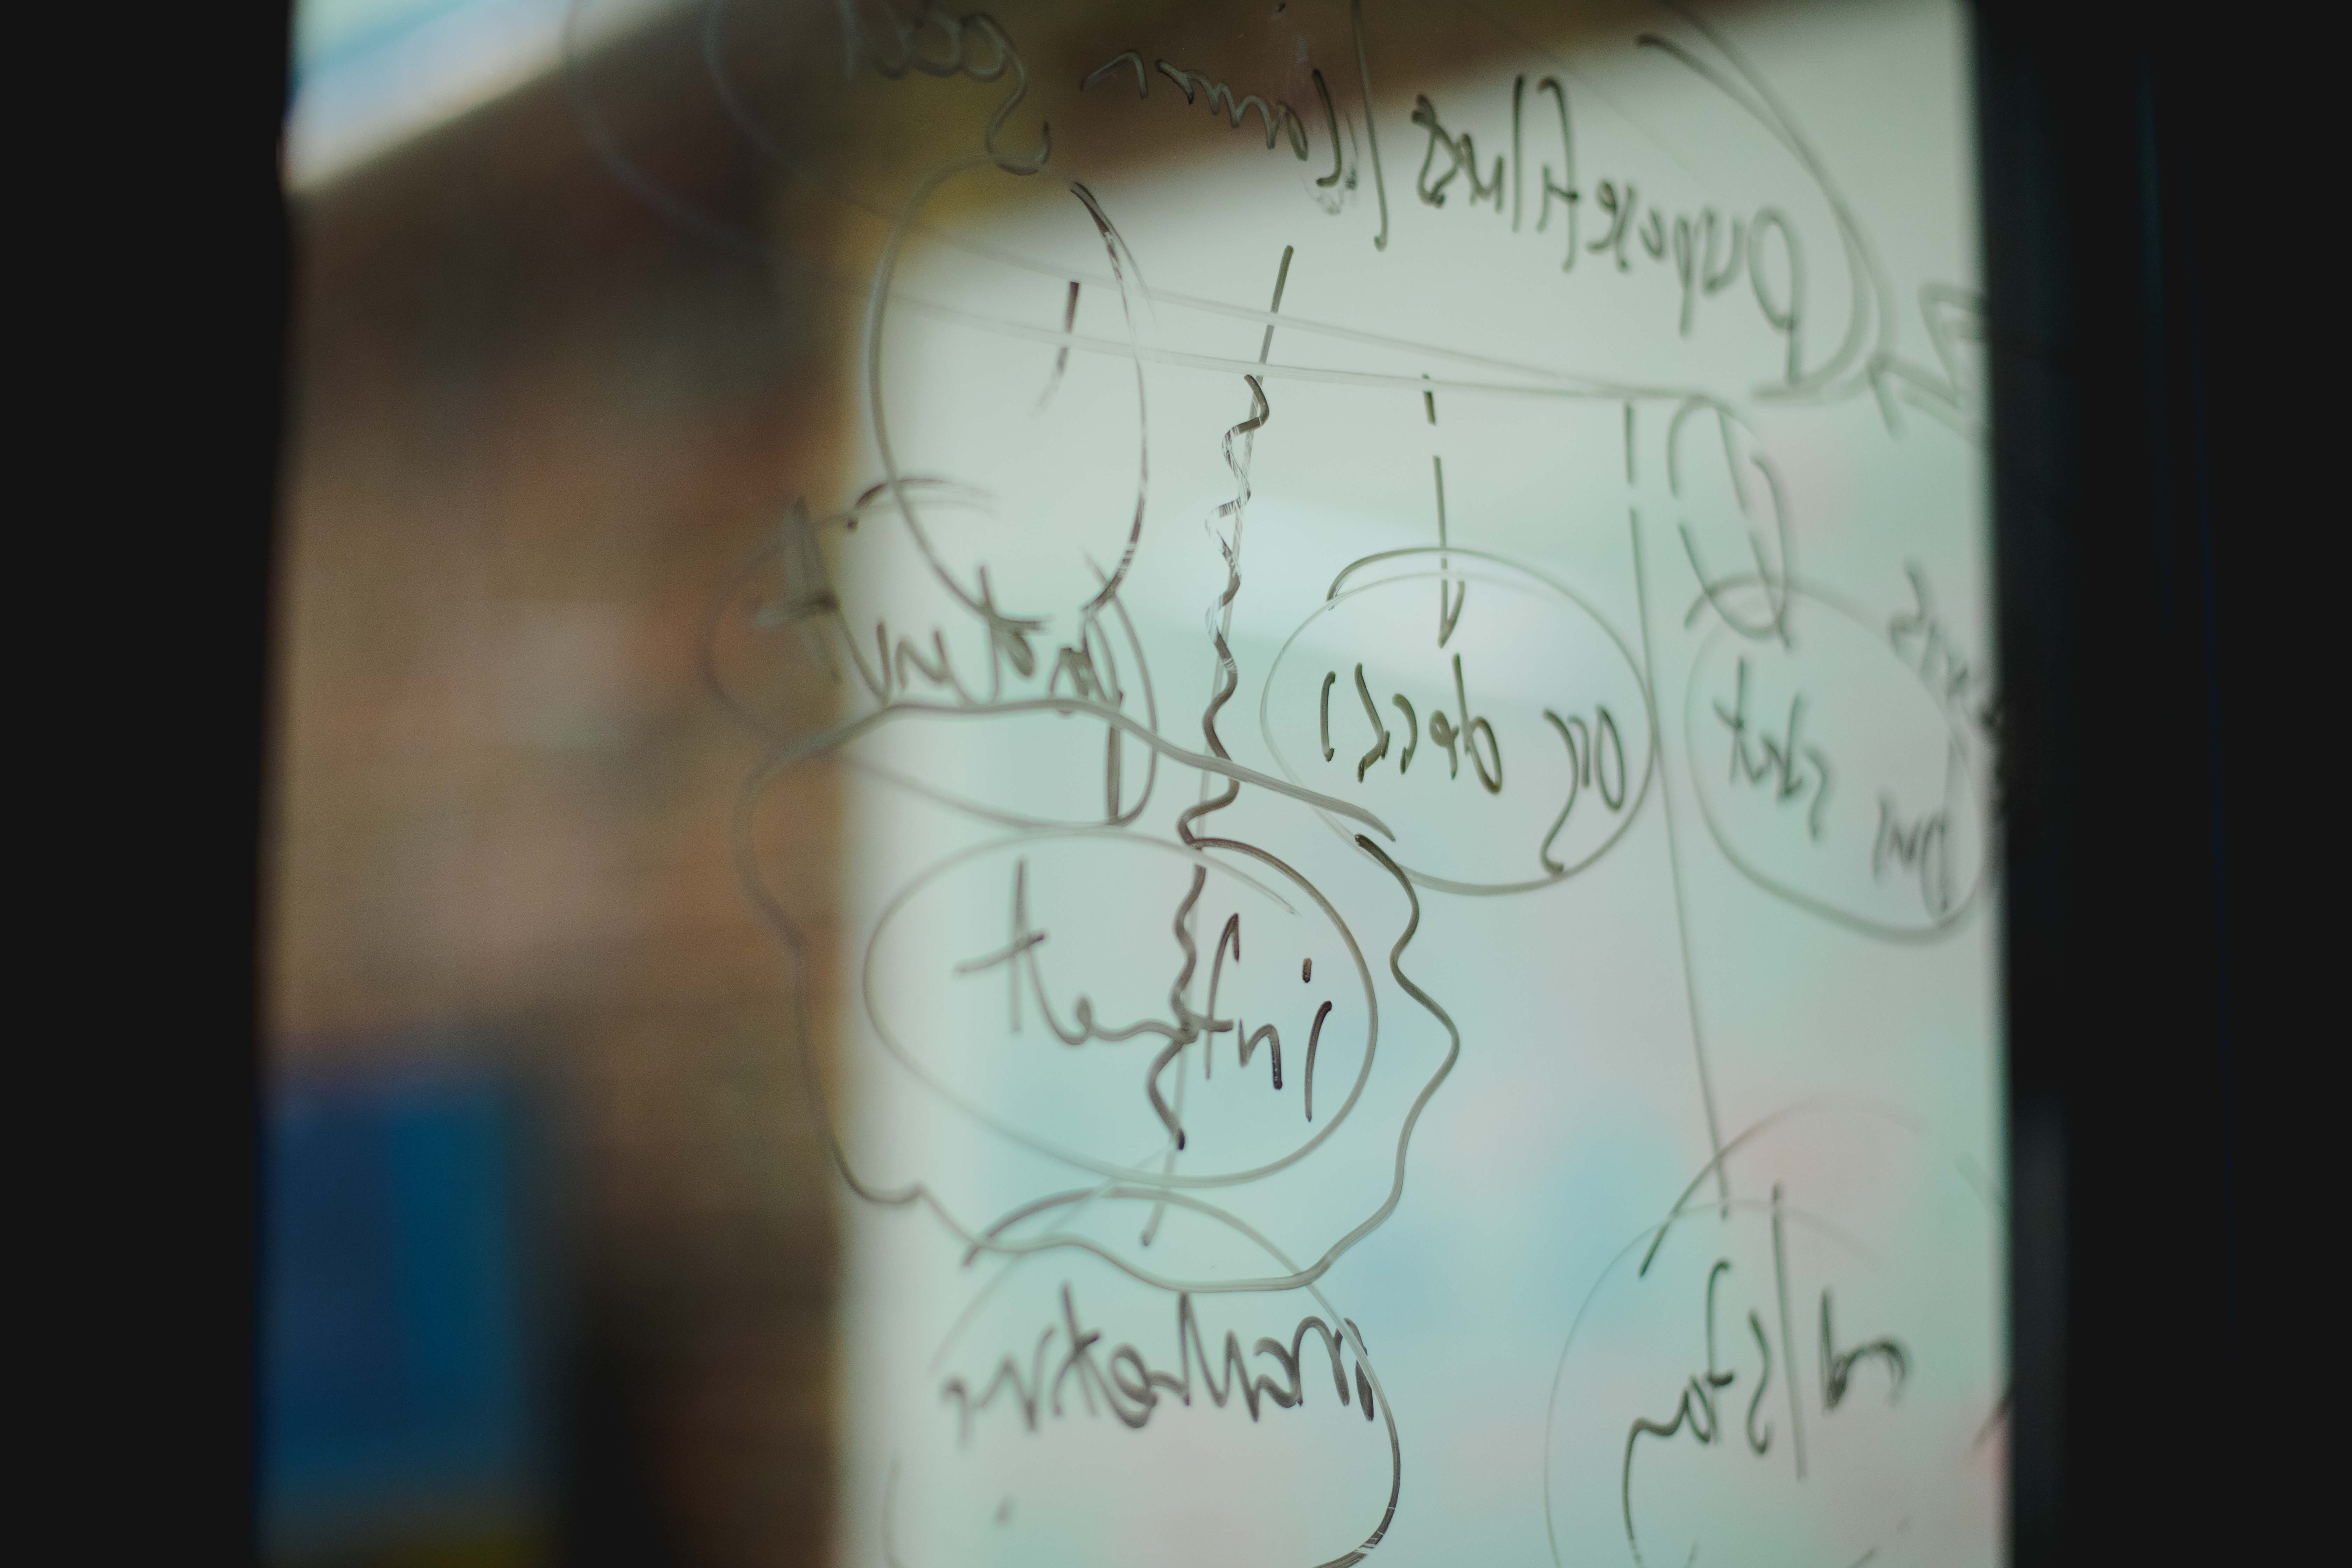 Scribblings on a window at the Whiteboard office.